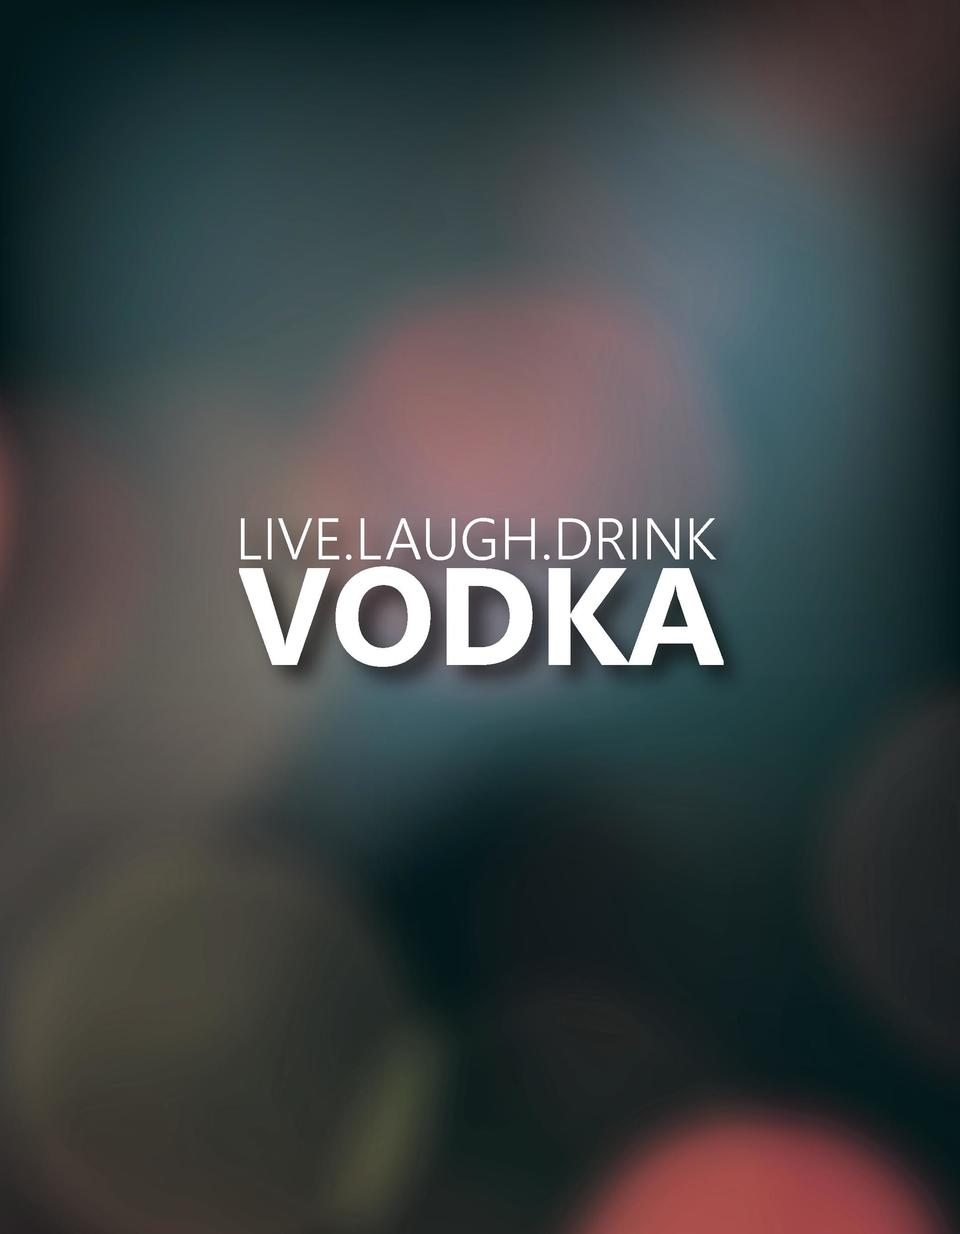 LIVE.LAUGH.DRINK  VODKA